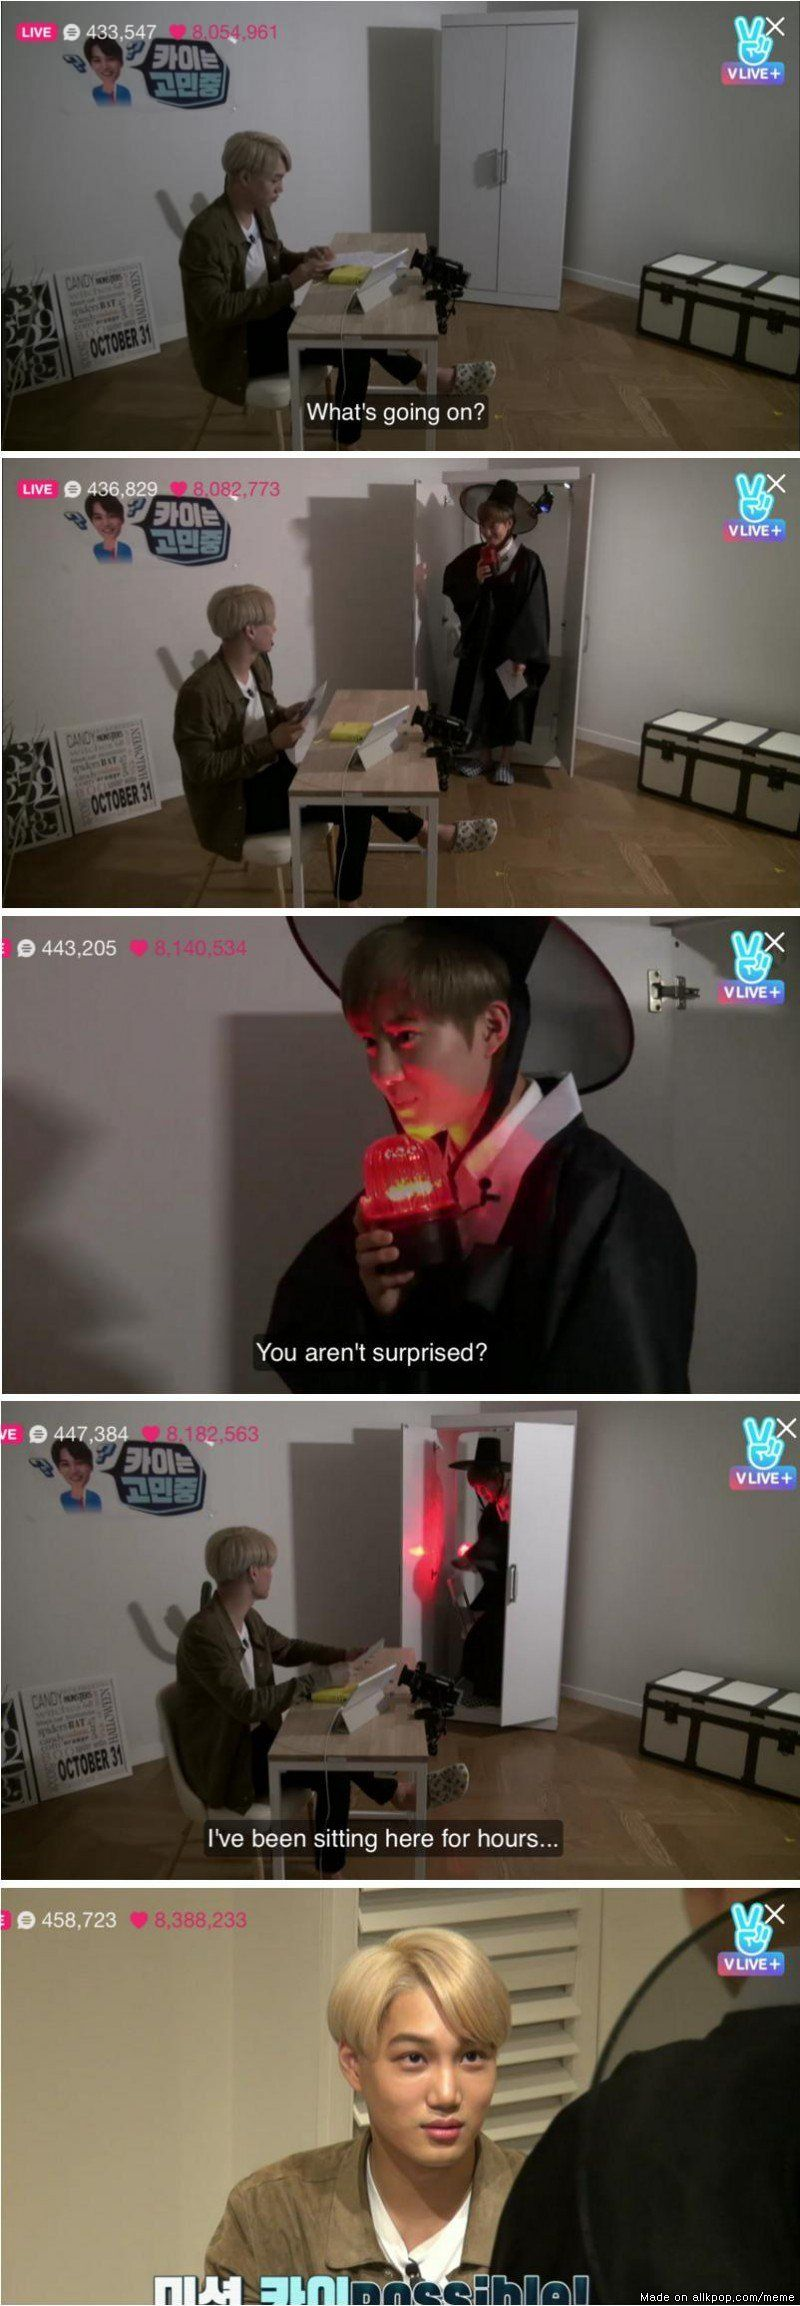 Suho failing miserably at trying to scare Kai and getting judged in return lmao